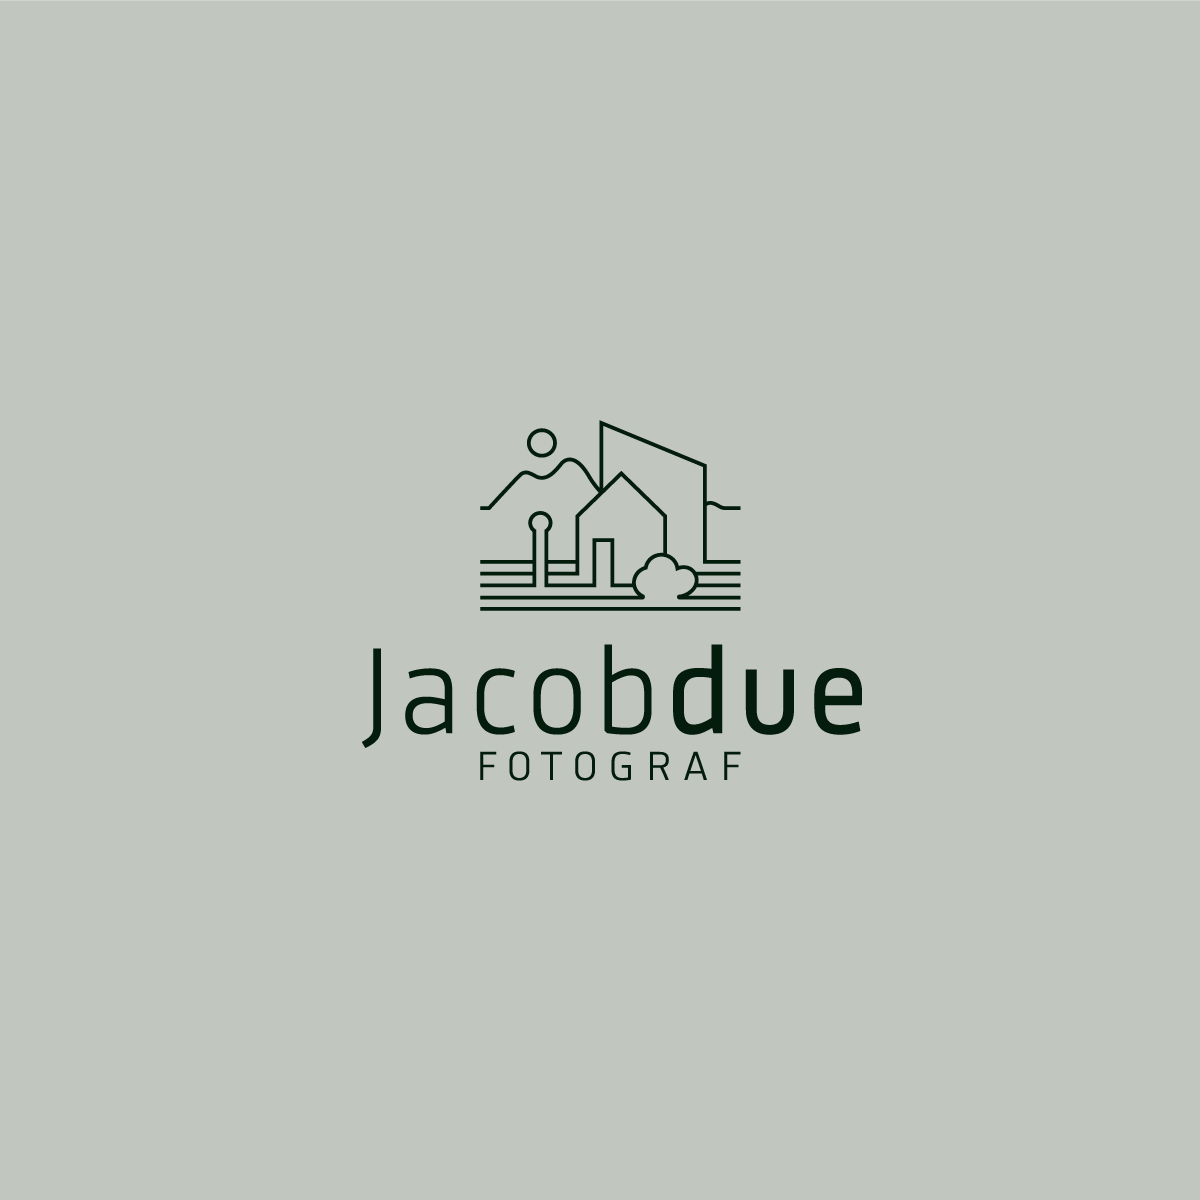 Jacob Due Logo